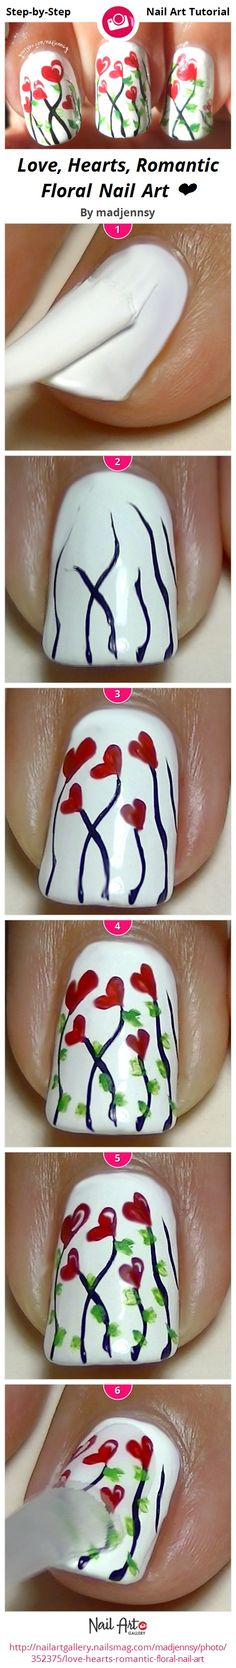 Love, Hearts, Romantic Floral Nail Art ❤ by madjennsy from Nail Art Gallery